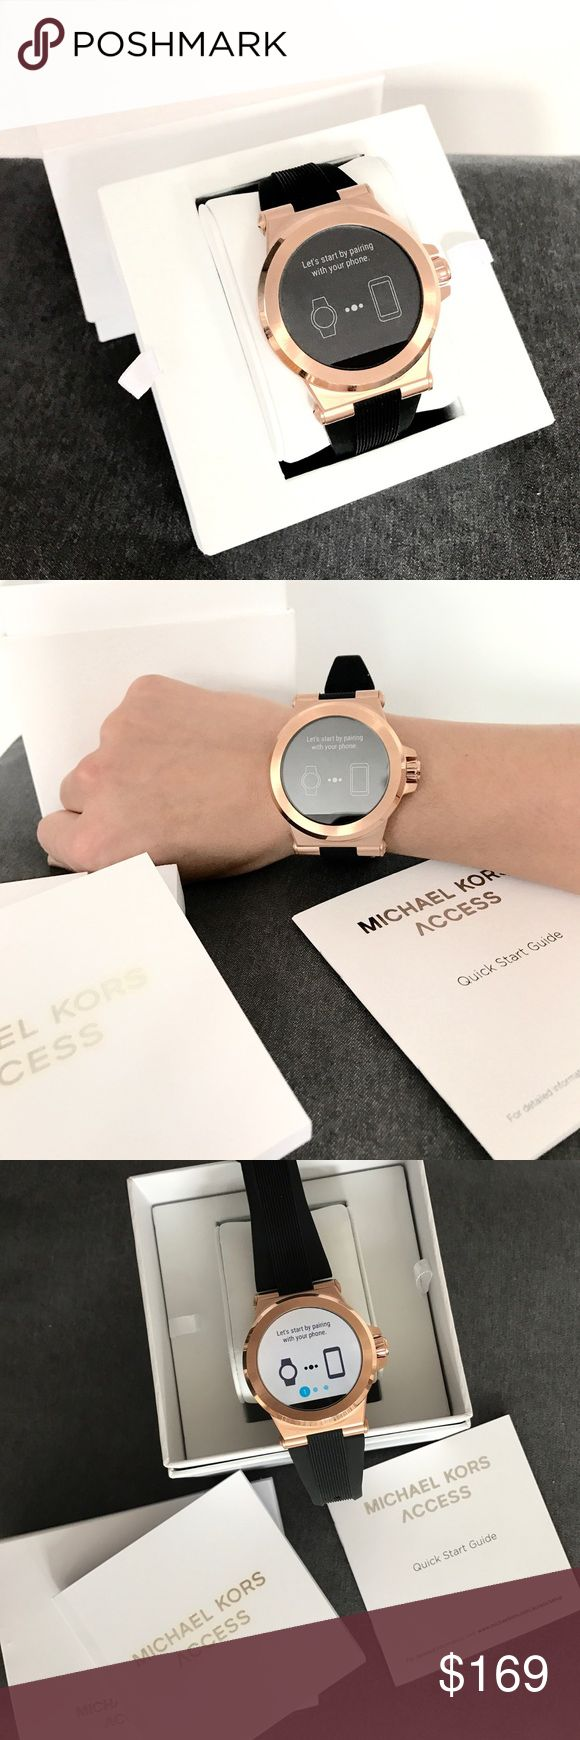 Brand New MK Unisex Access Dylan smartwatch Technology meets jet-set style with the Michael Kors Access Dylan rose gold-tone display smartwatch. Powered by Android Wear™, this smartwatch connects with your favorite apps and is compatible with Apple and Android smartphones. Has built-in fitness. Receive notifications, such as calls and alerts, at a glance as well. Fully personalize your watch by selecting or customizing the watch face of your choice and changing out the straps to match your…